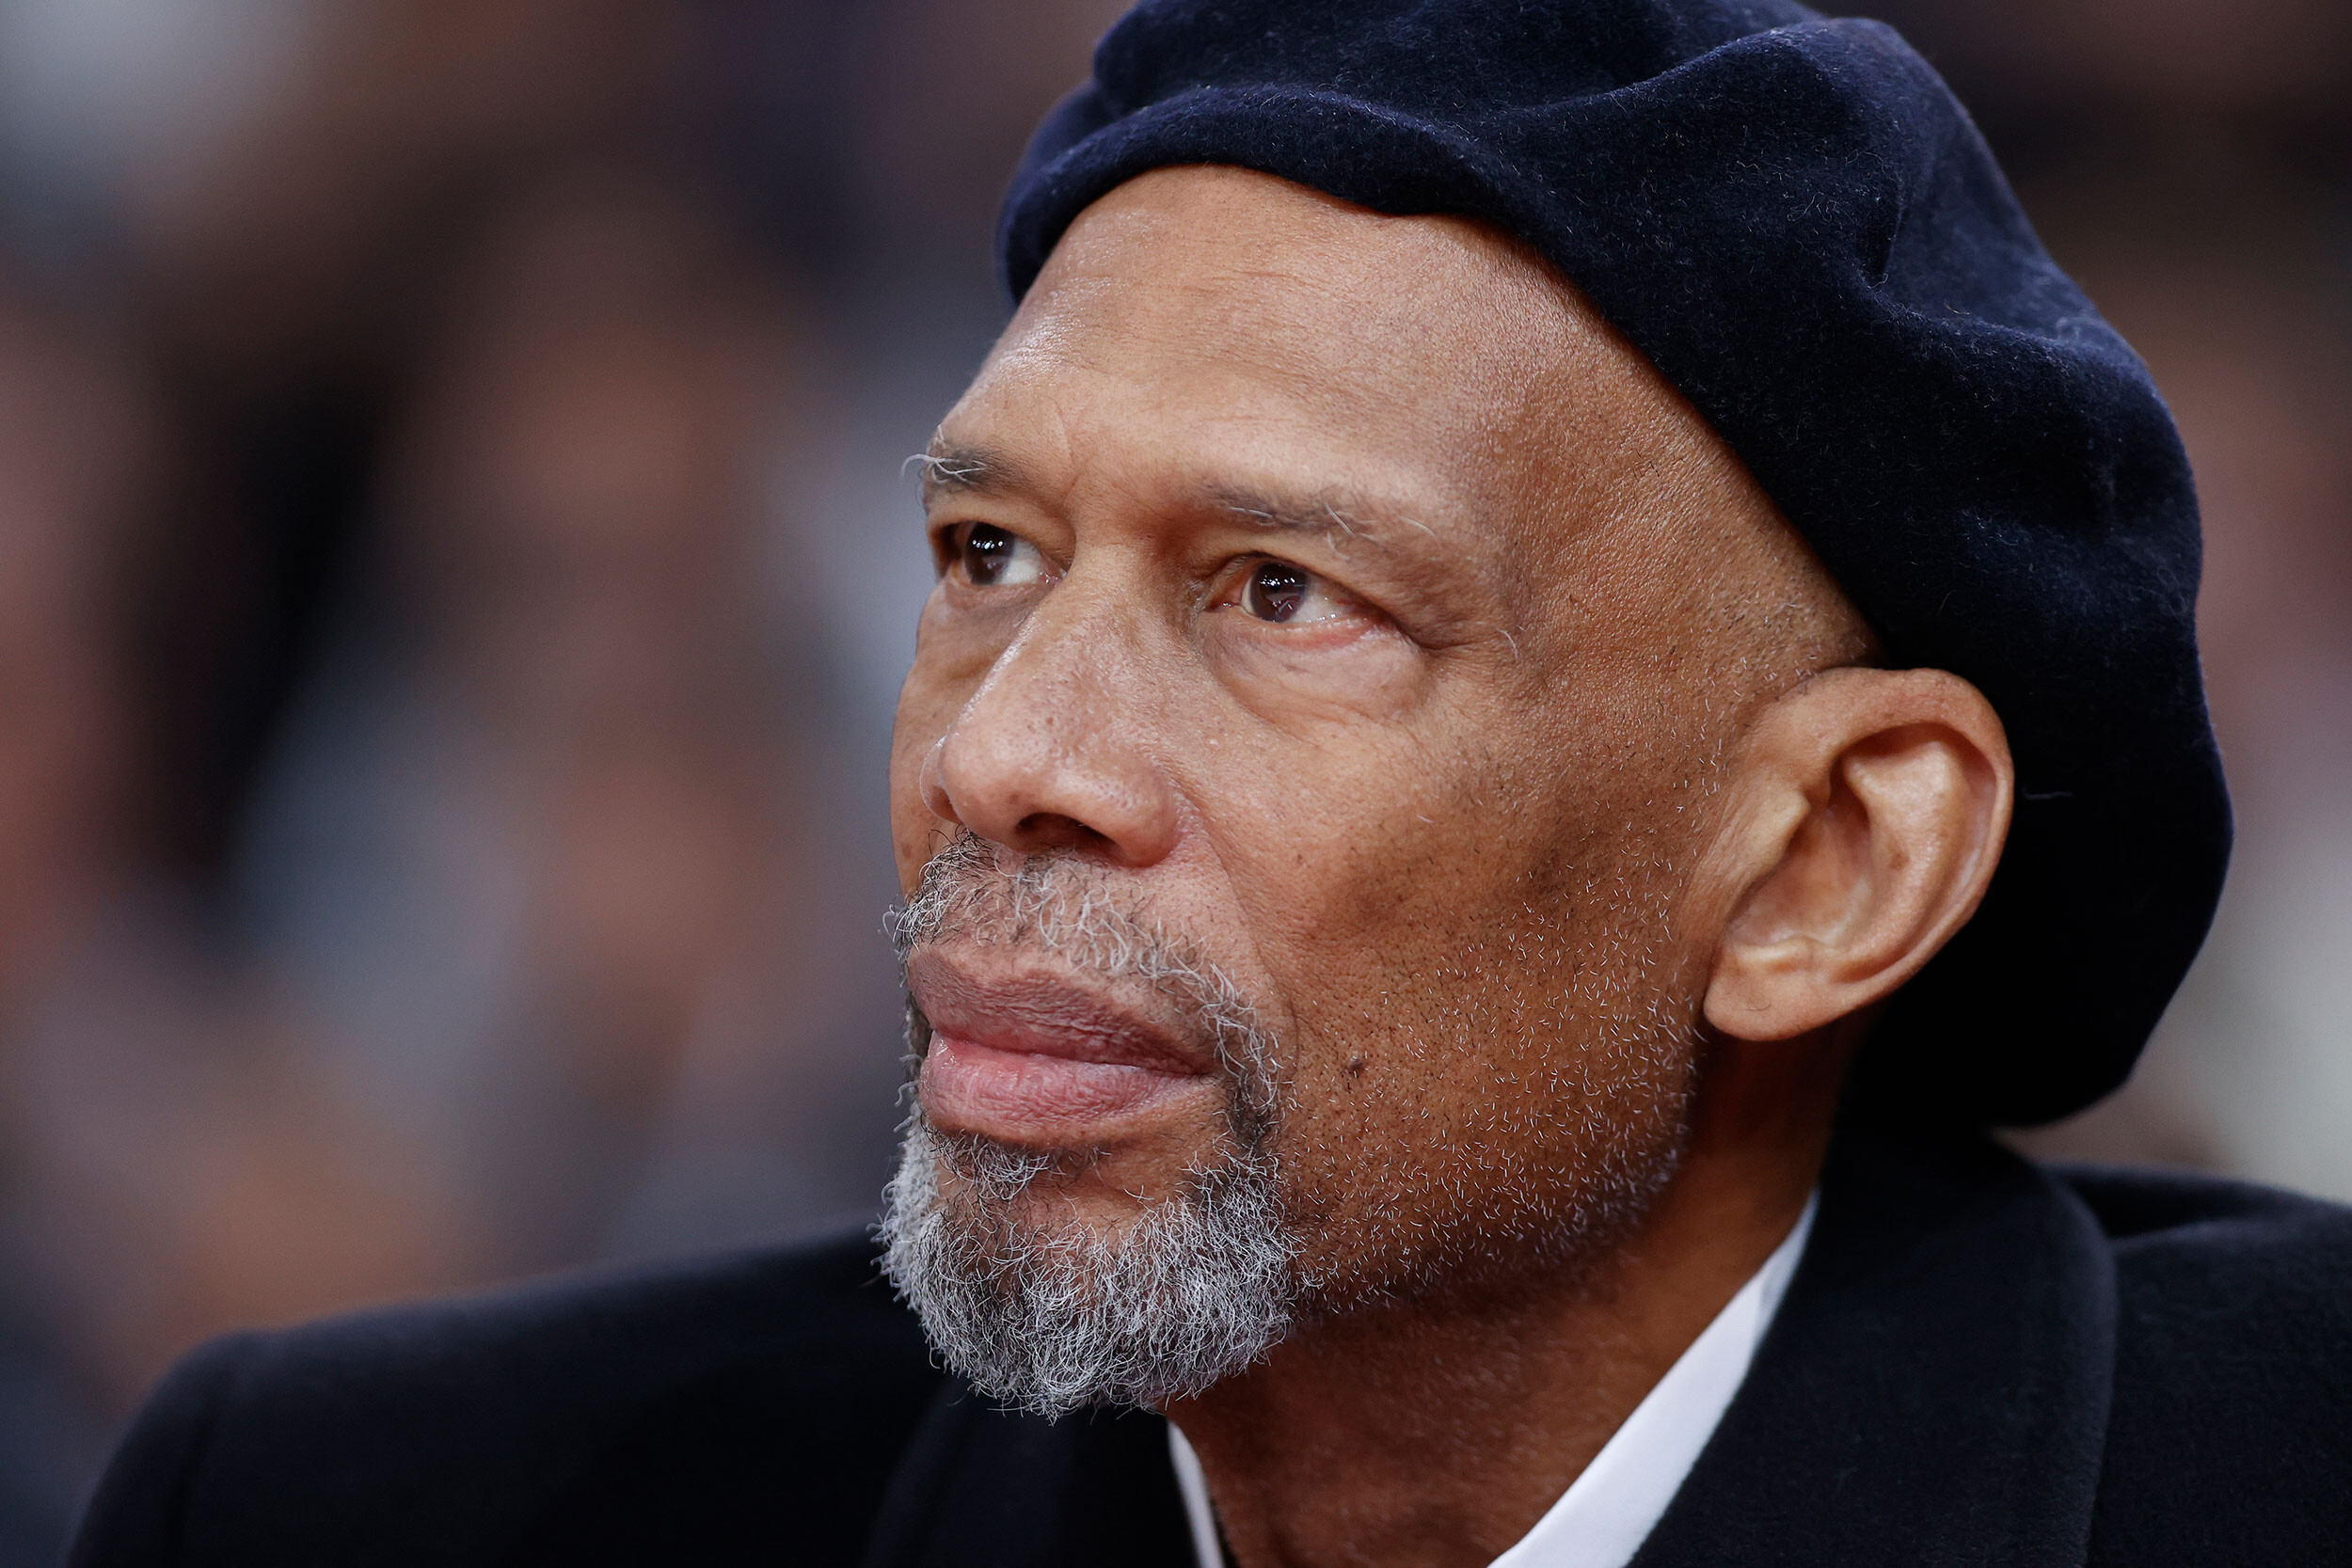 NBA legend Kareem Abdul-Jabbar calls for unvaccinated players to be removed from teams